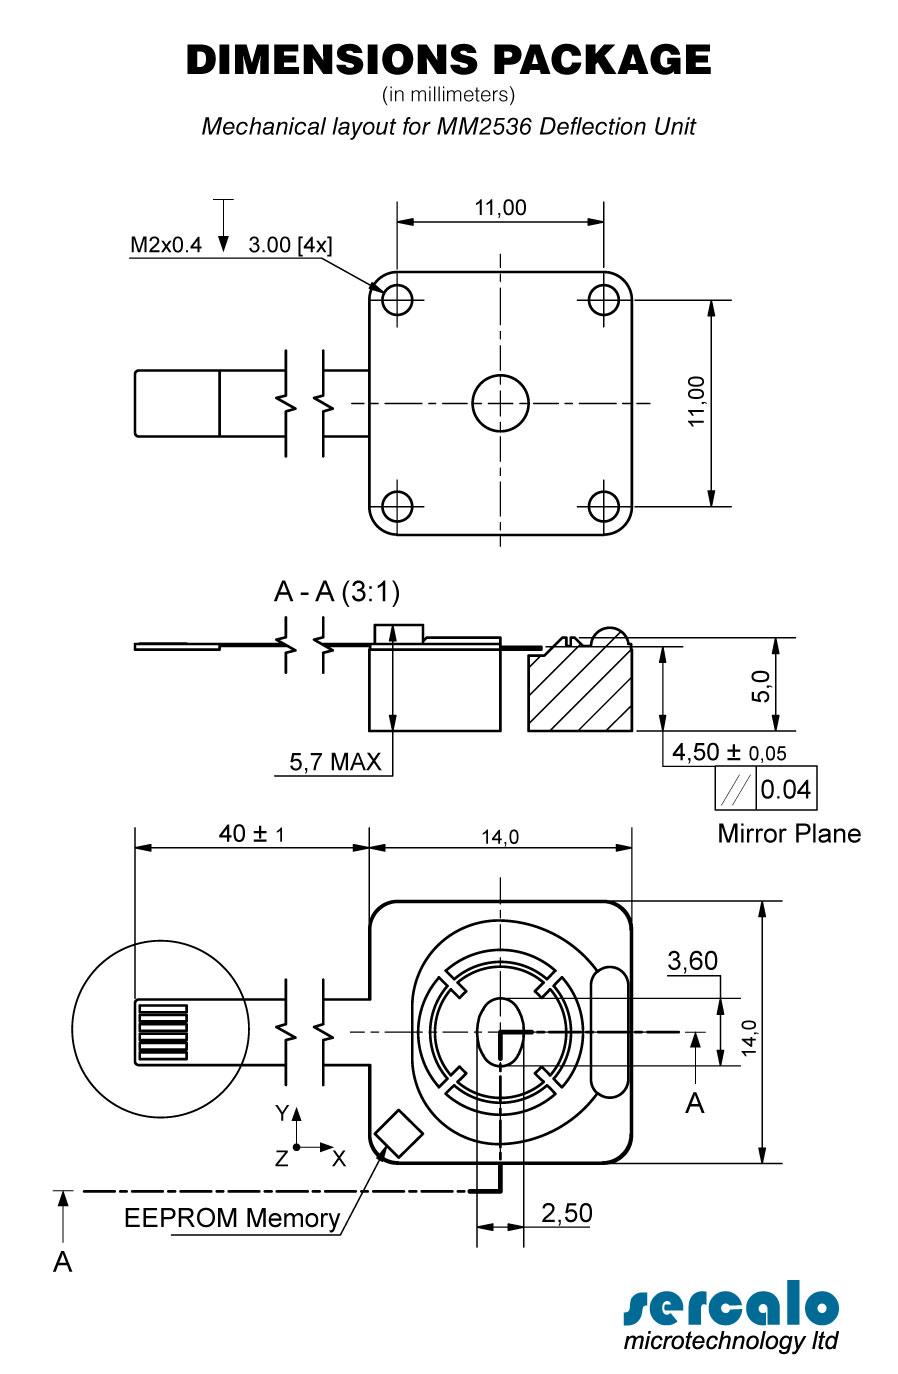 DUAL AXES DEFLECTION UNIT MM2536-2 - DIMENSIONS PACKAGE